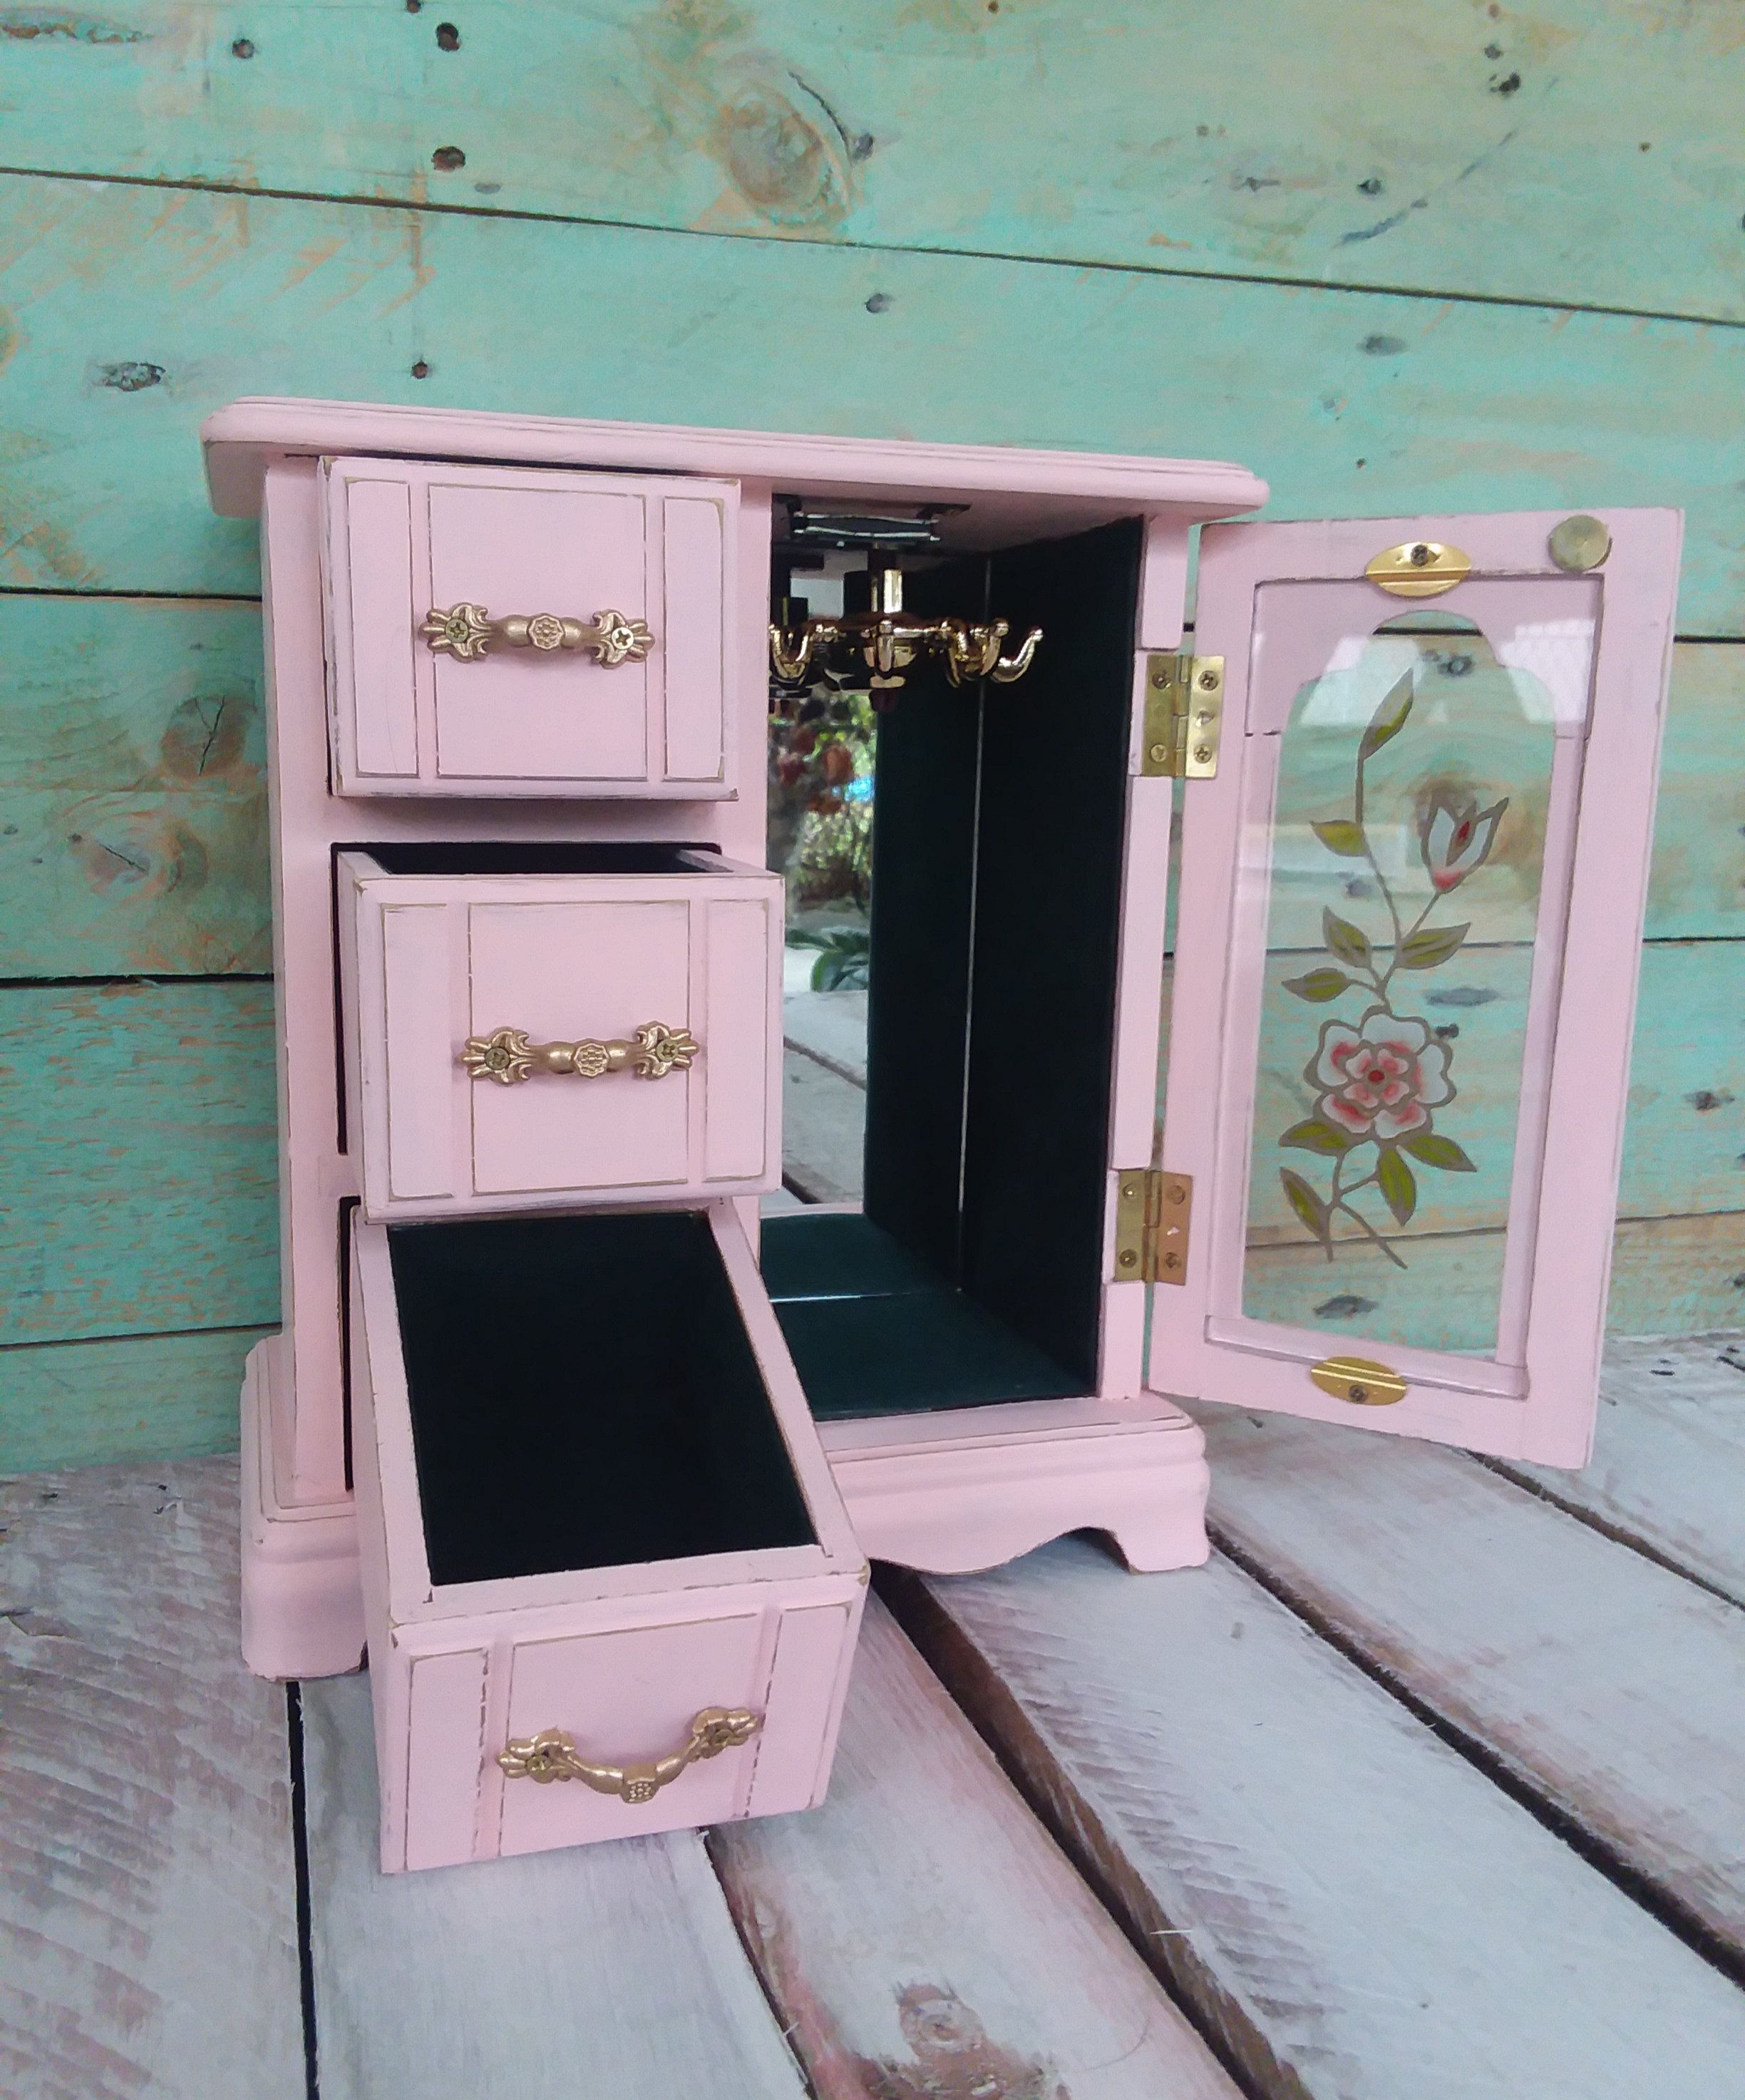 Small Shabby Chic Pink Jewelry Box Vintage Wooden Jewelry Armoire Painted Ballerina Pink Dis Shabby Chic Jewellery Box Pink Jewelry Box Painted Jewelry Armoire